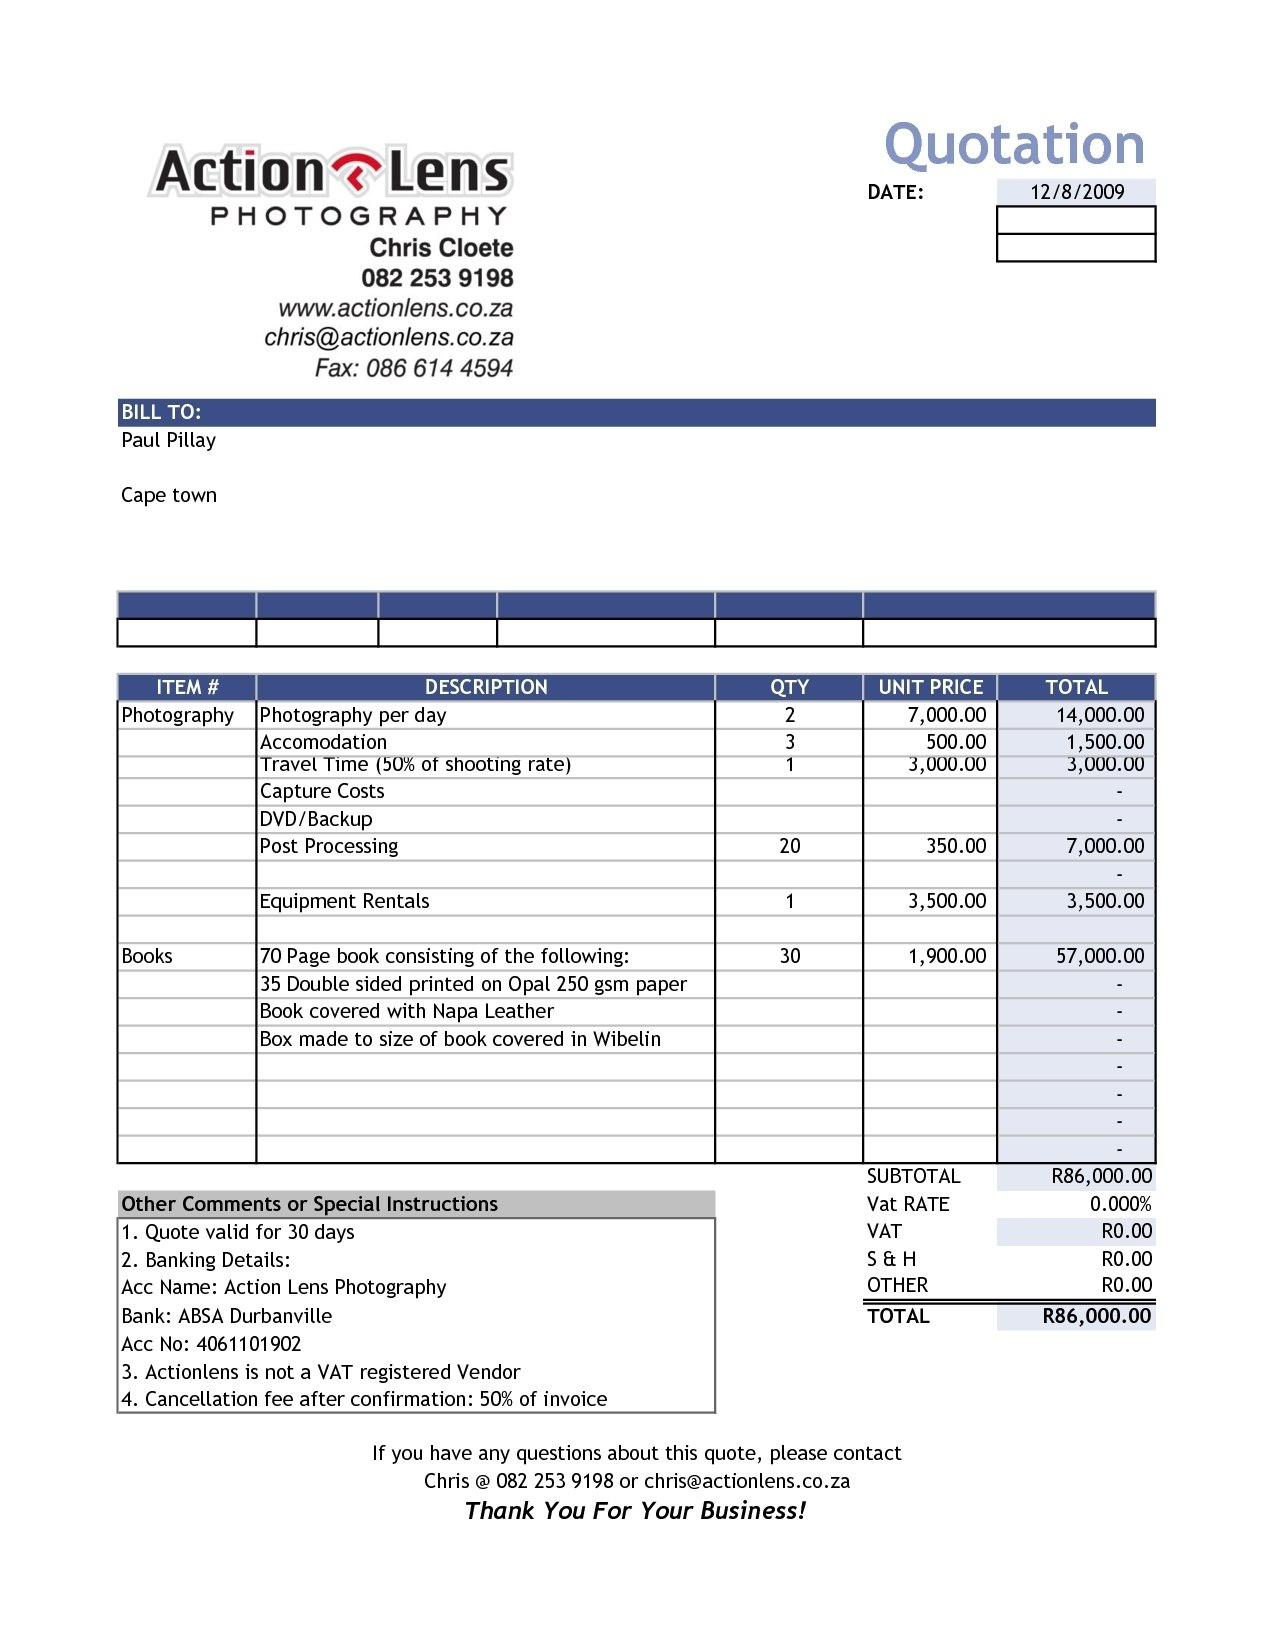 Invoice Template Xls Free Download Seven Easy Ways To And Resume Regarding Invoice Template Xls Free Download